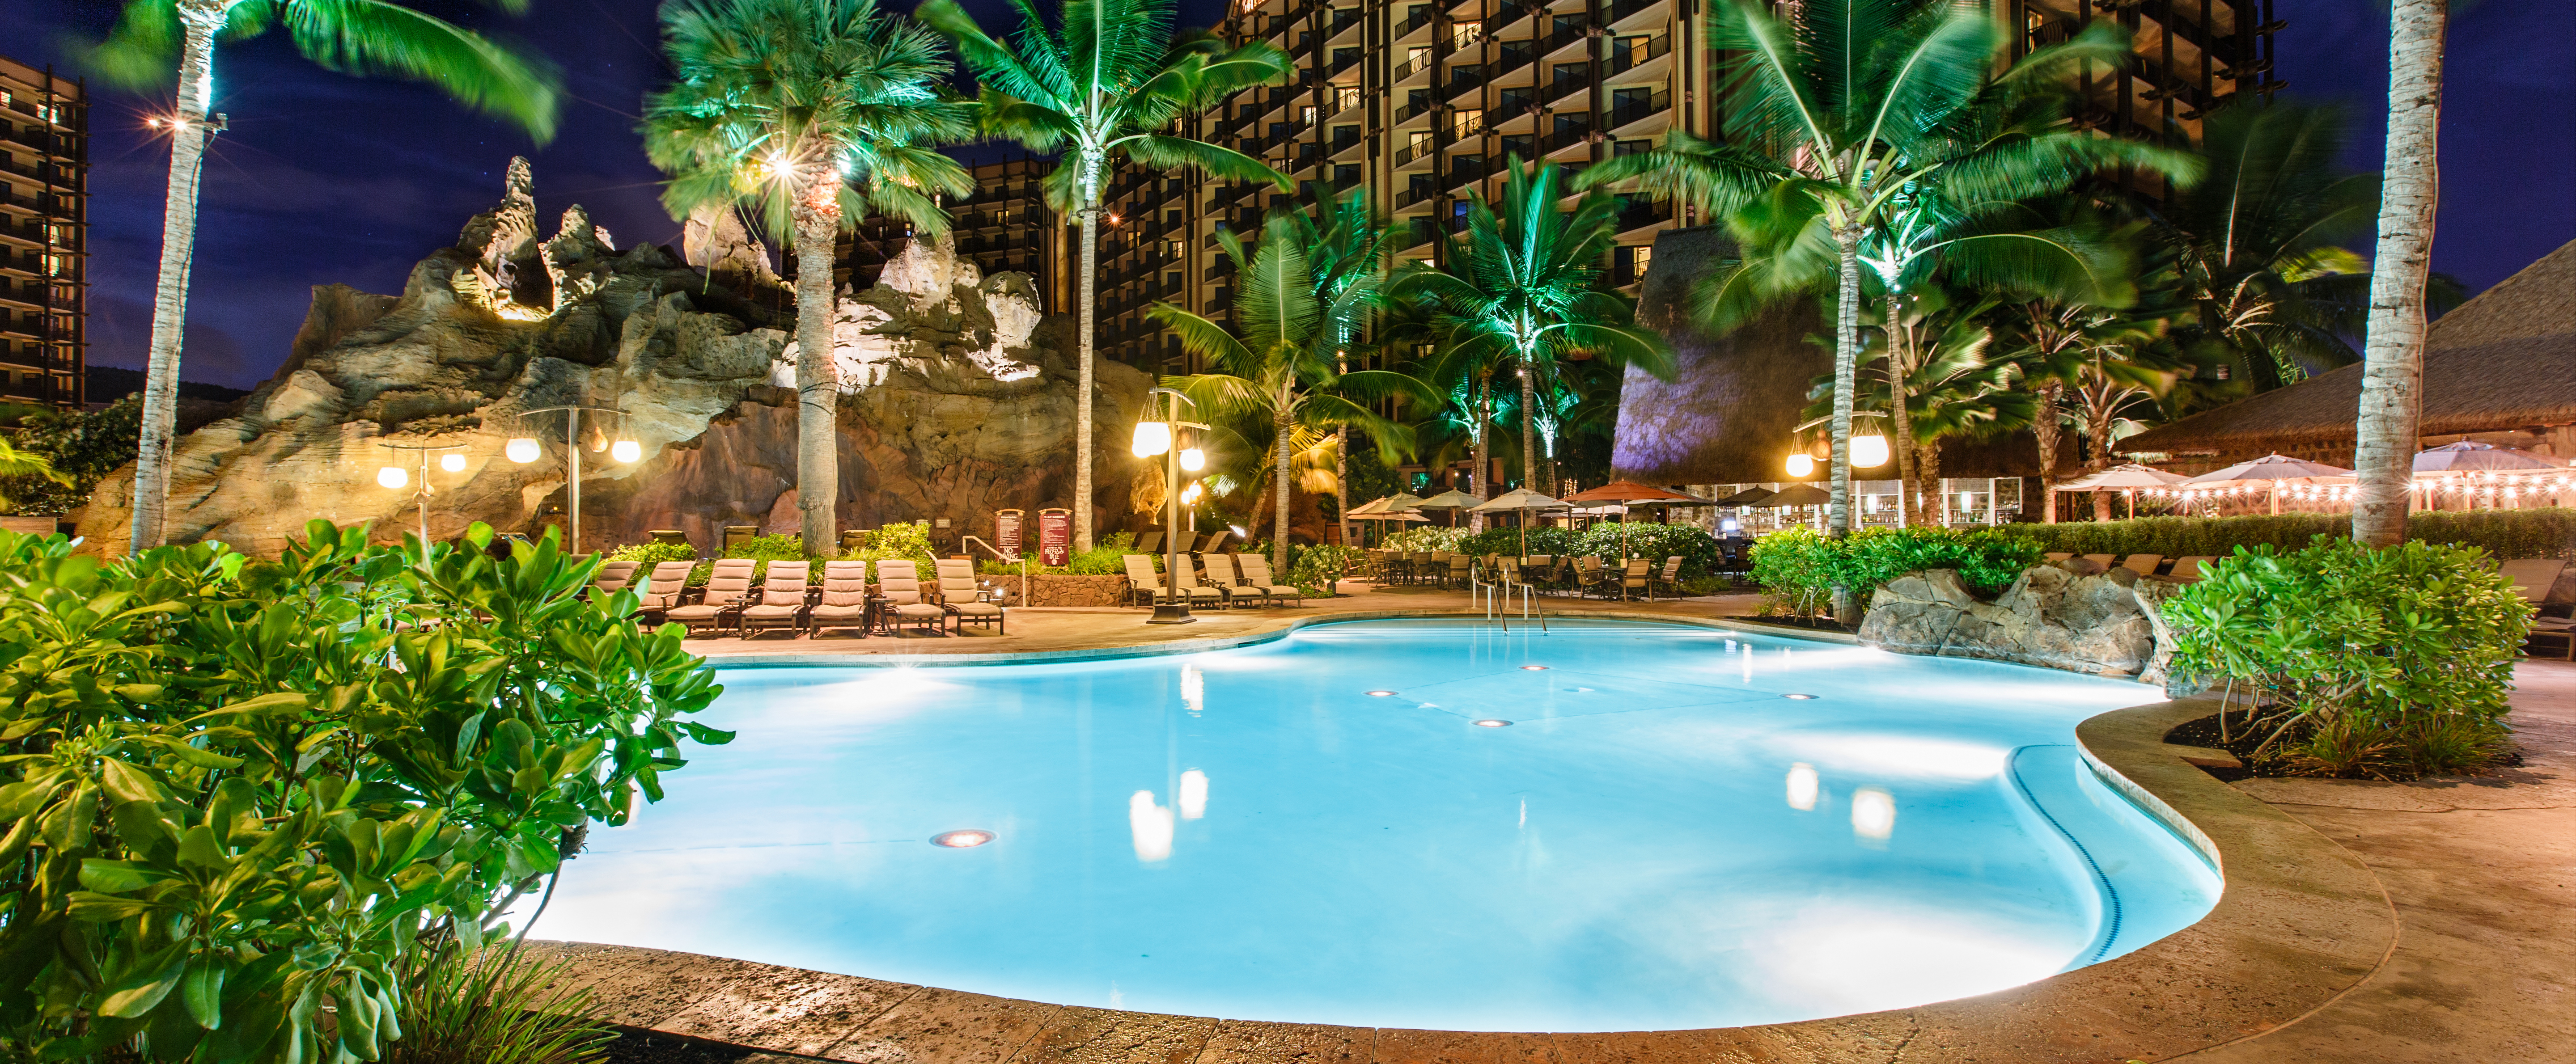 Waikolohe Pool lit up at night, surrounded by lounge chairs, palm trees and shrubs